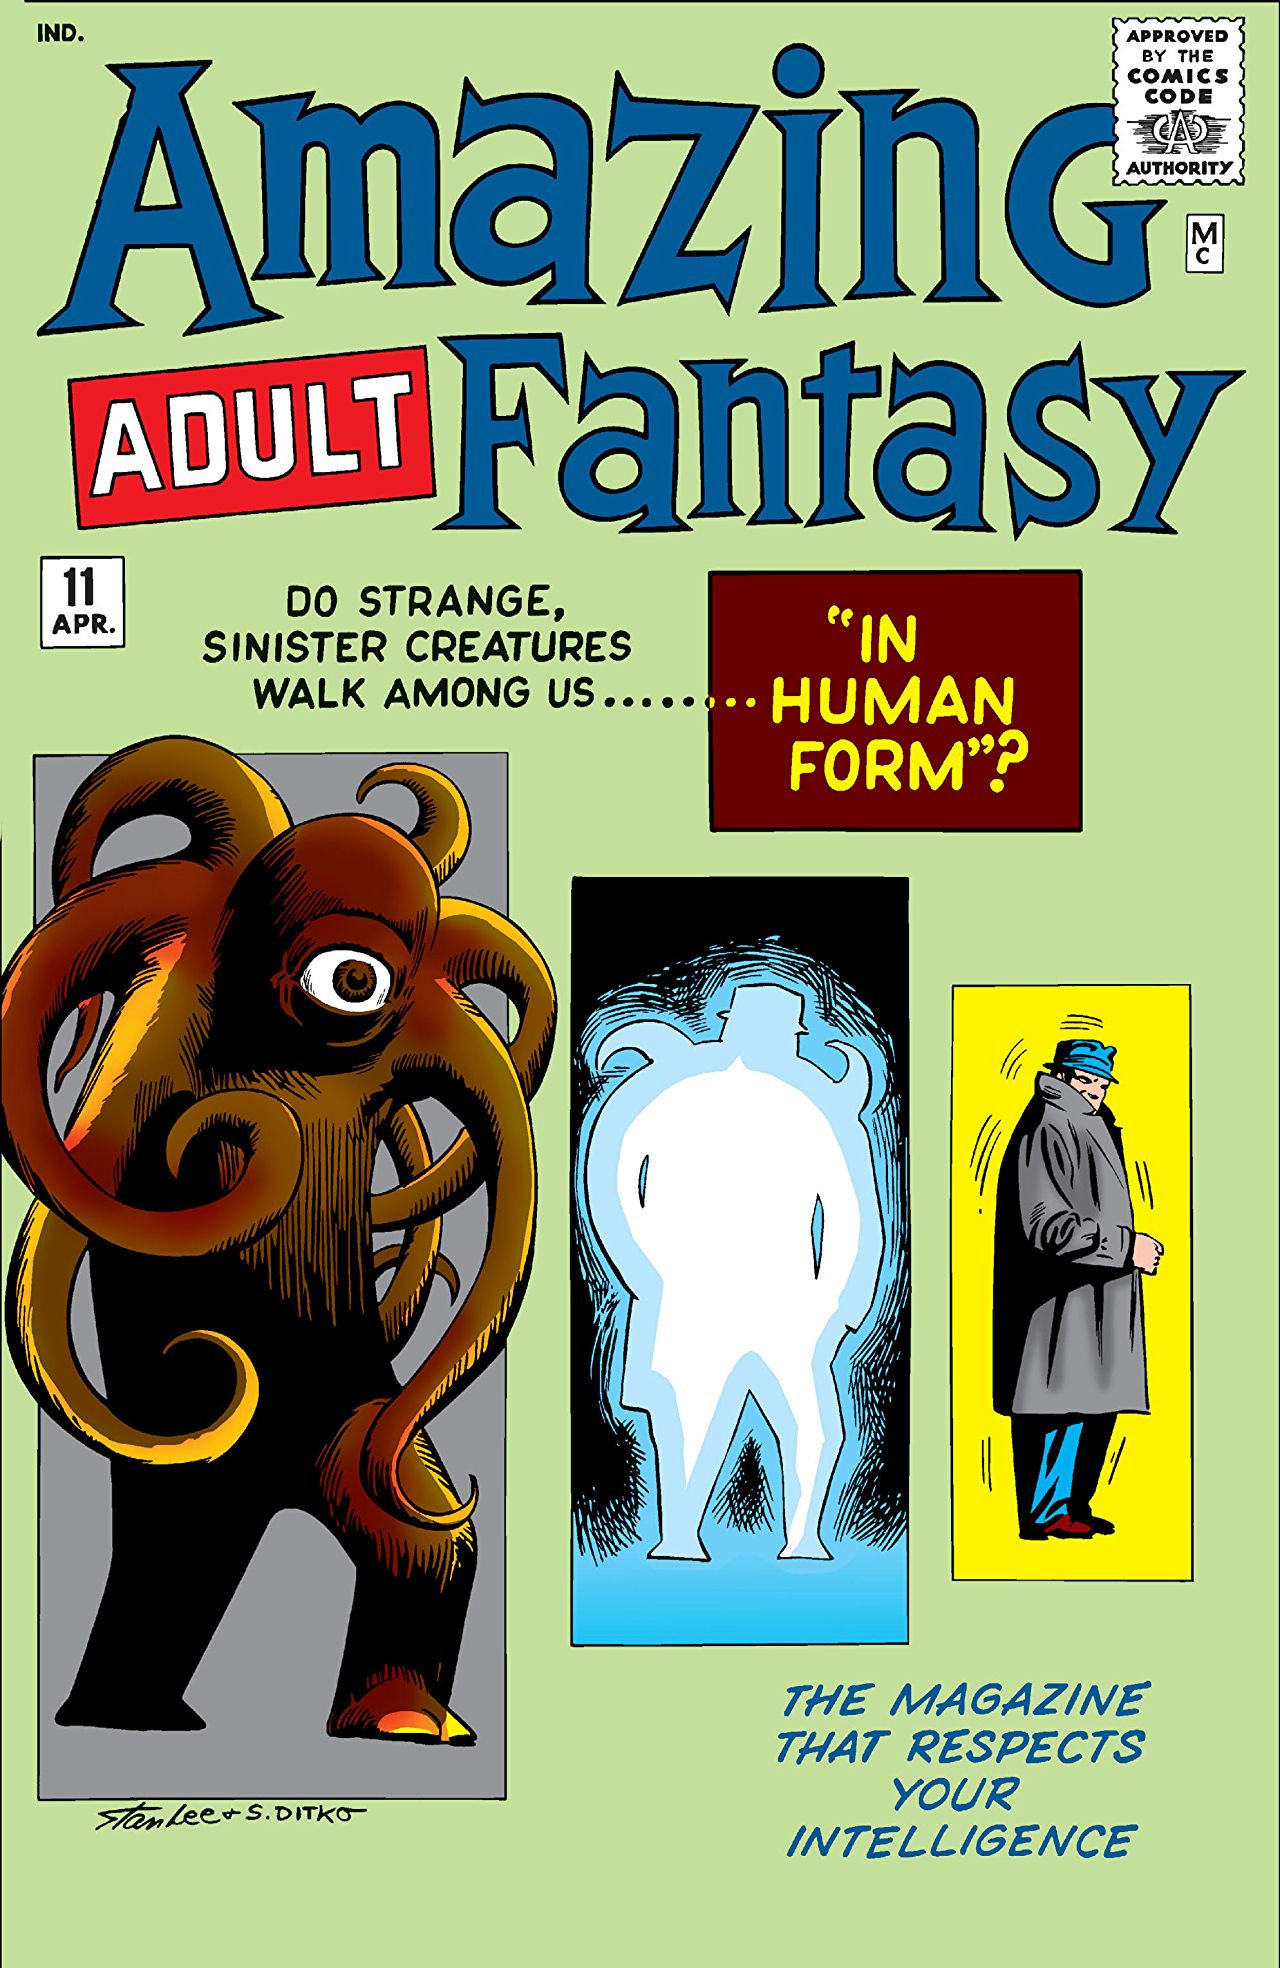 File:Amazing Adult Fantasy Vol 1 11.jpg